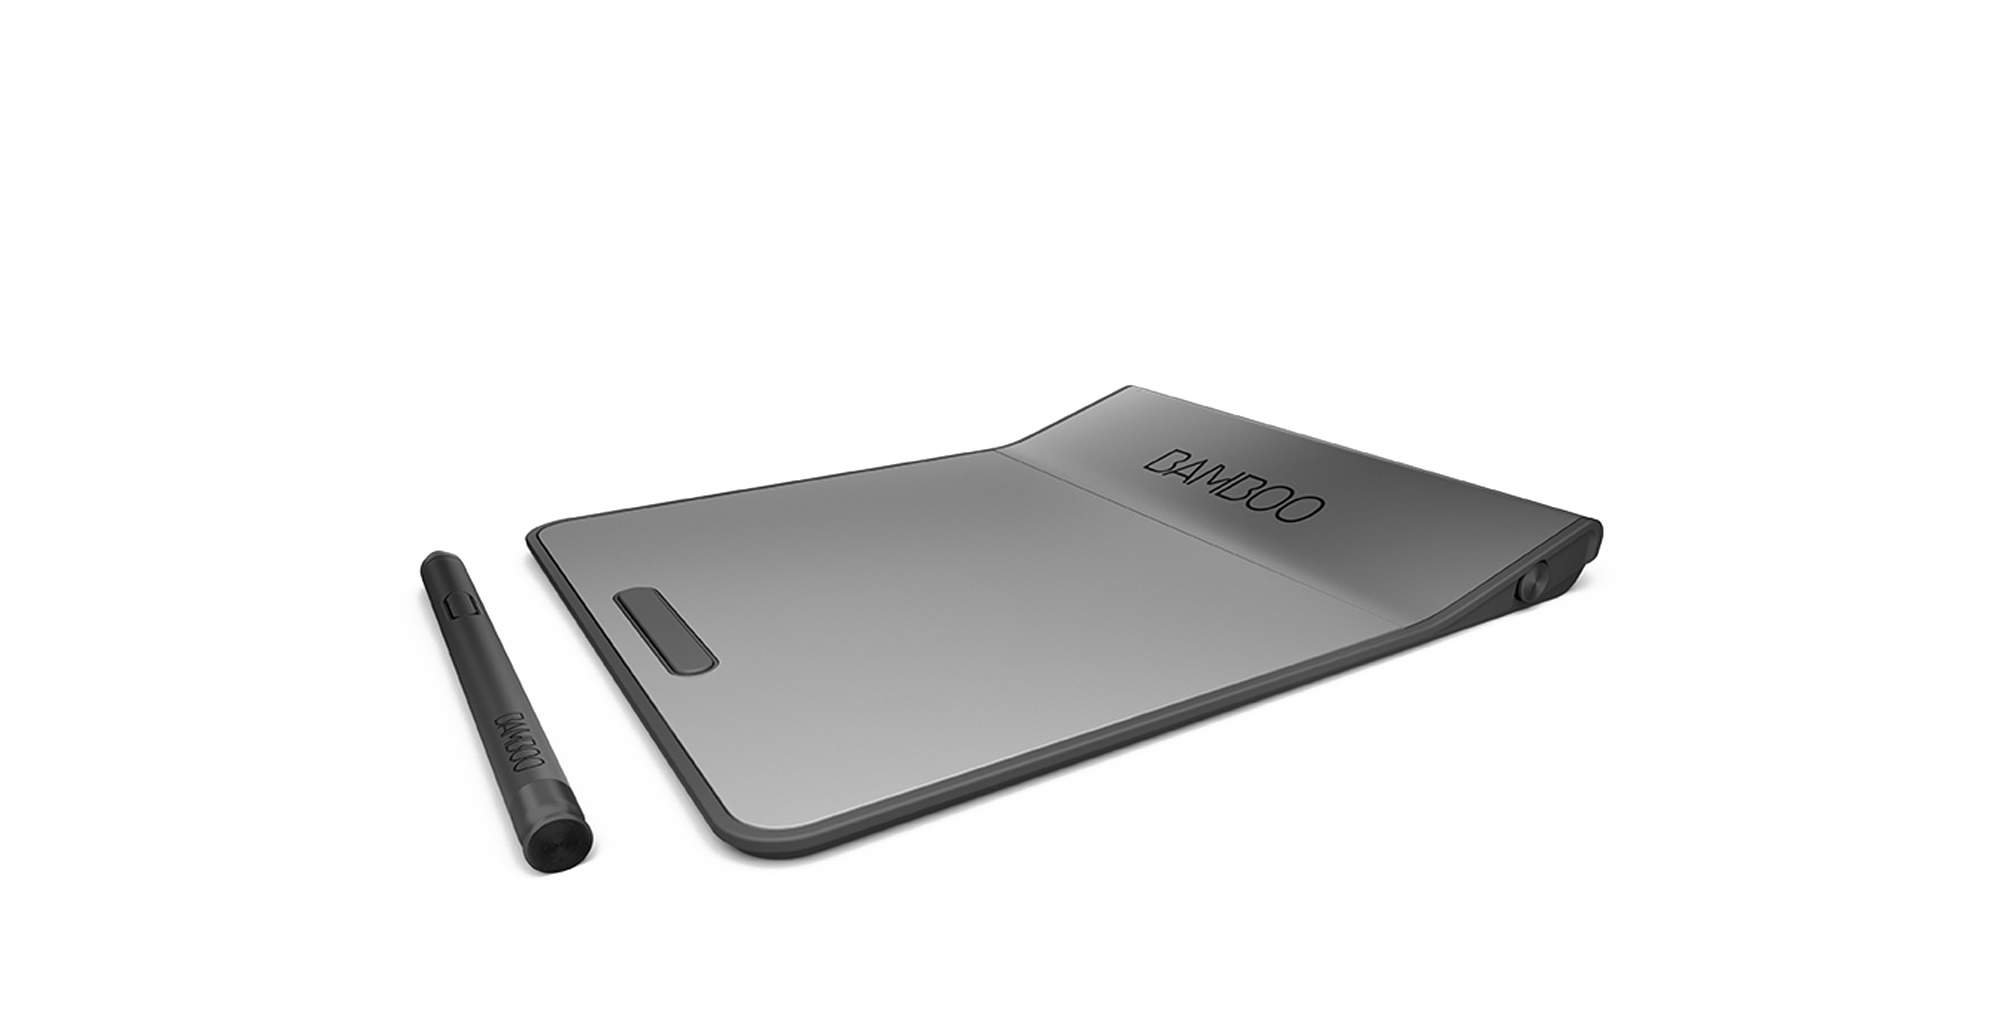 Win a Wacom Bamboo Touchpad with Digital Stylus